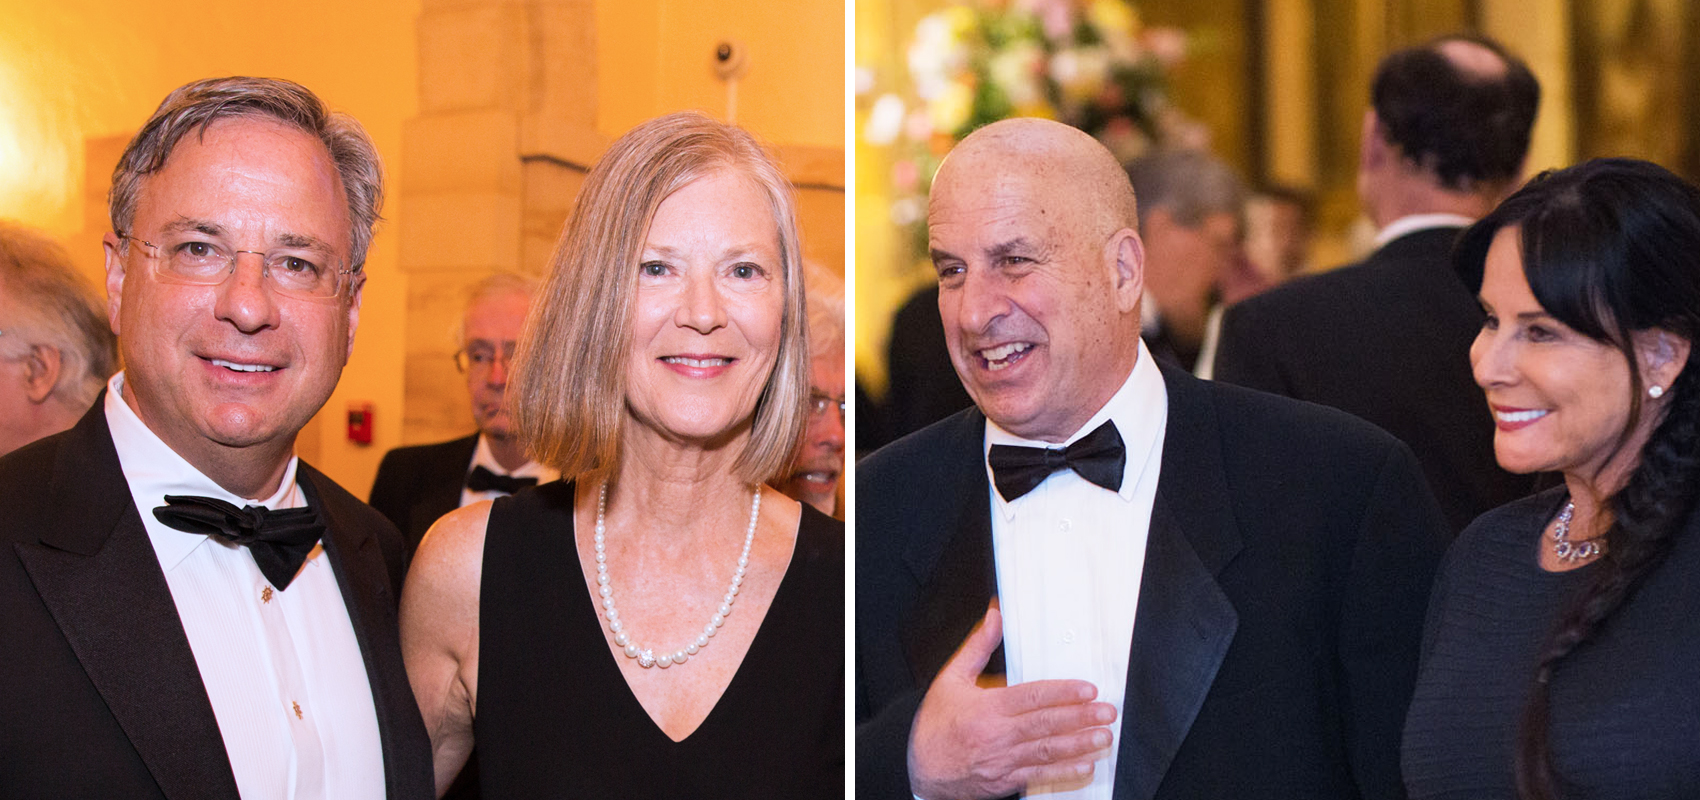 Neal and Florence Cohen and Stuart and Mimi Rose, 2019 Folger Gala Co-Chairs. Photos by Yassine El Mansouri and Nesh Photography.